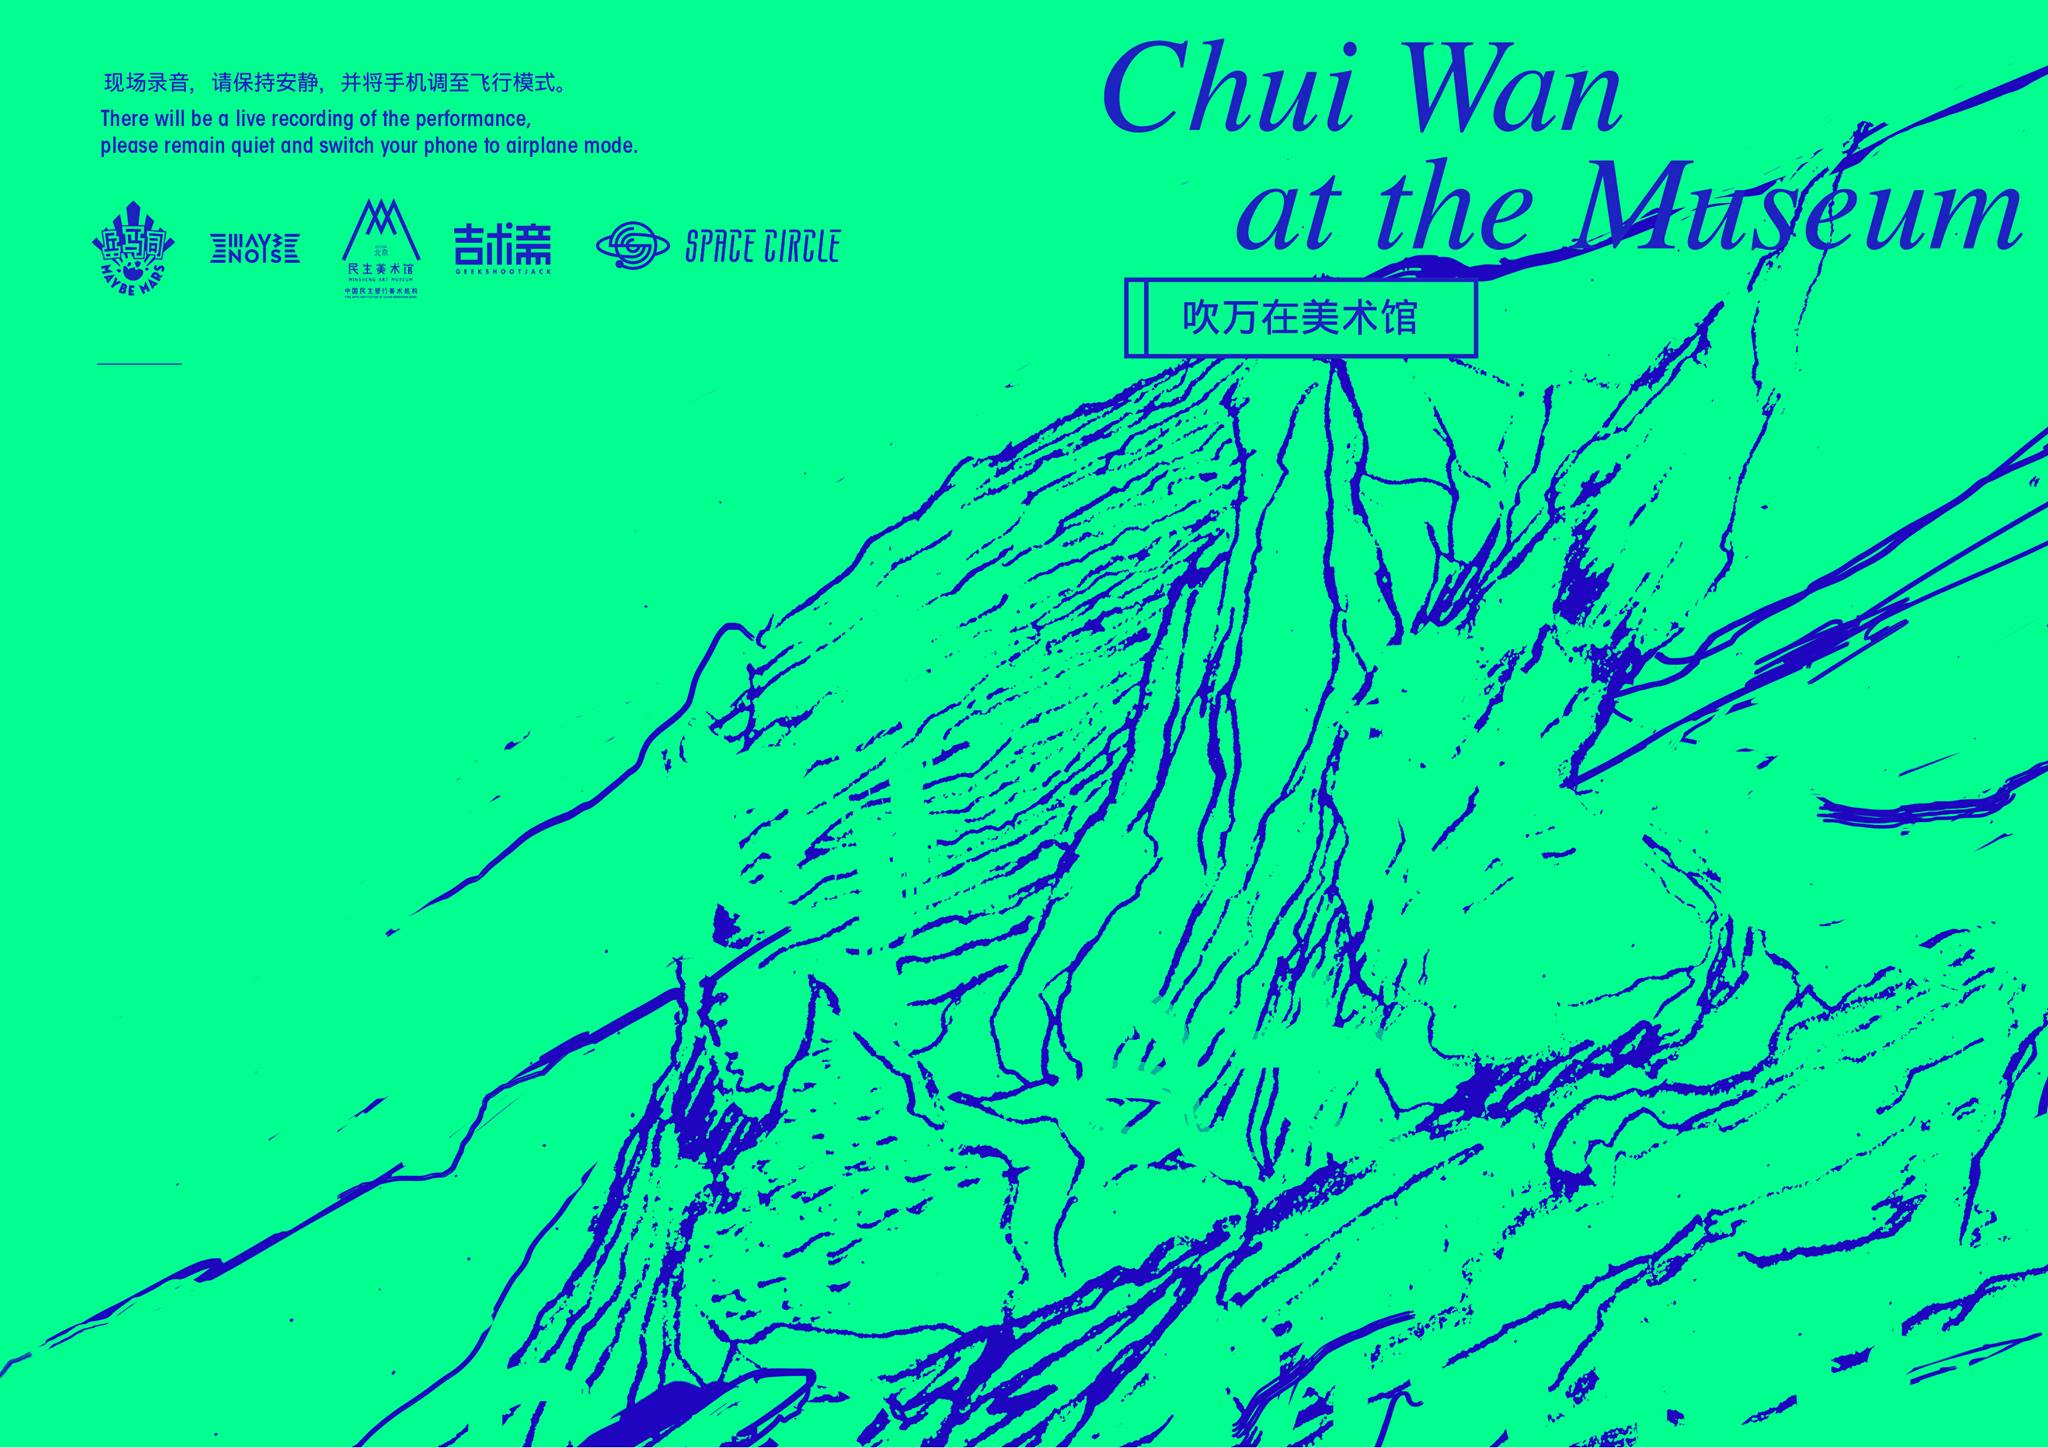 Chui Wan at the museum